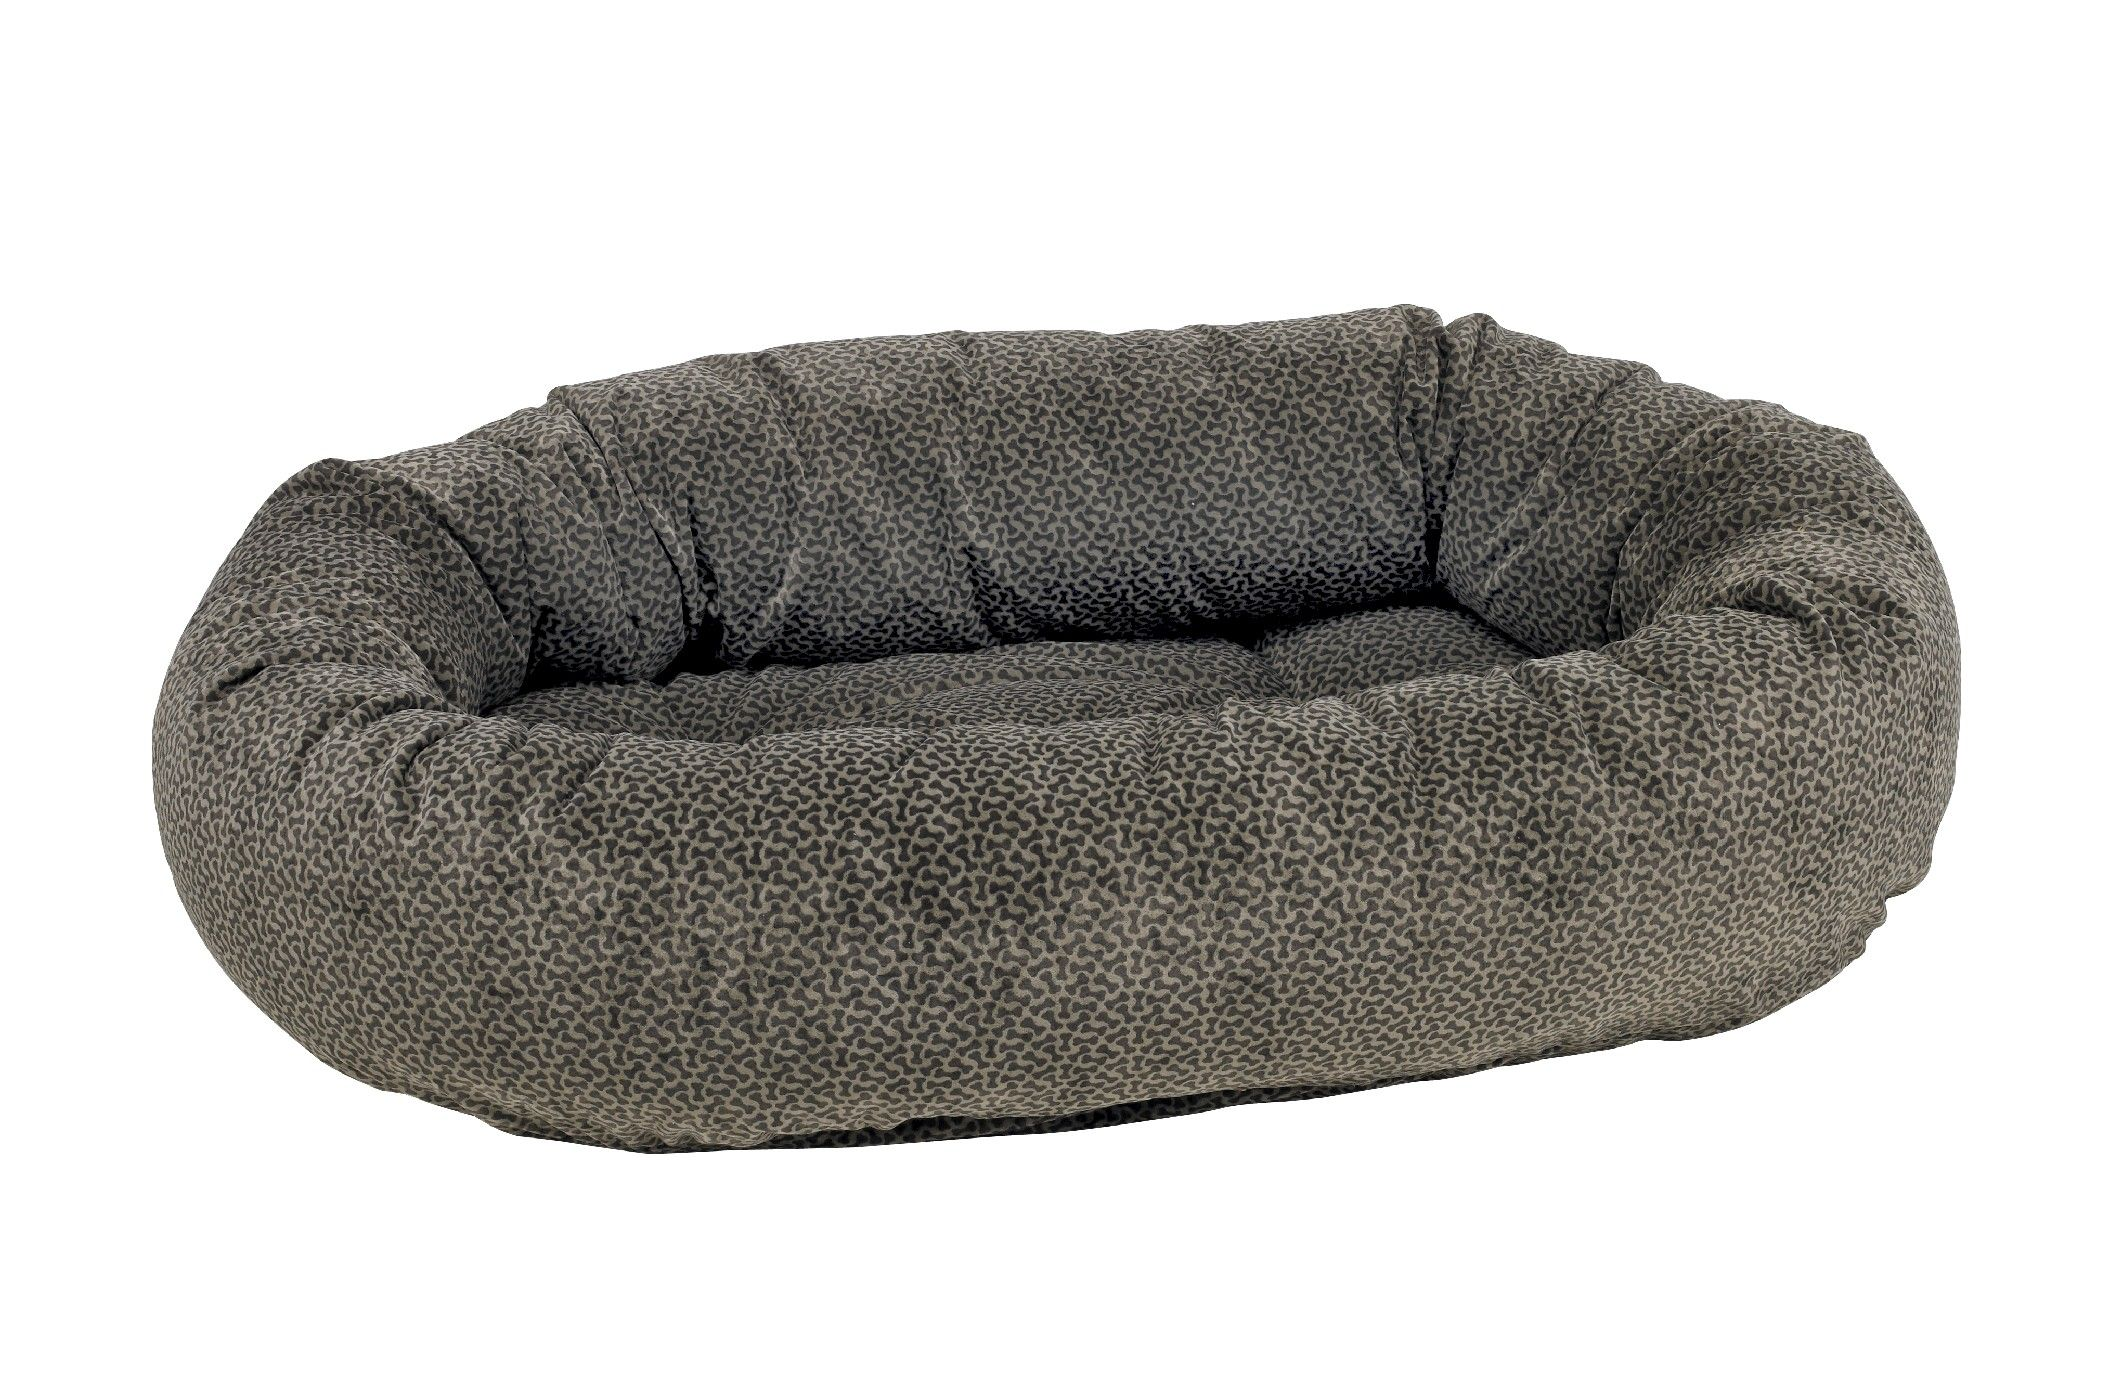 Picture of: Bowsers Donut Dog Beds Diamond Collection Petonly Ca